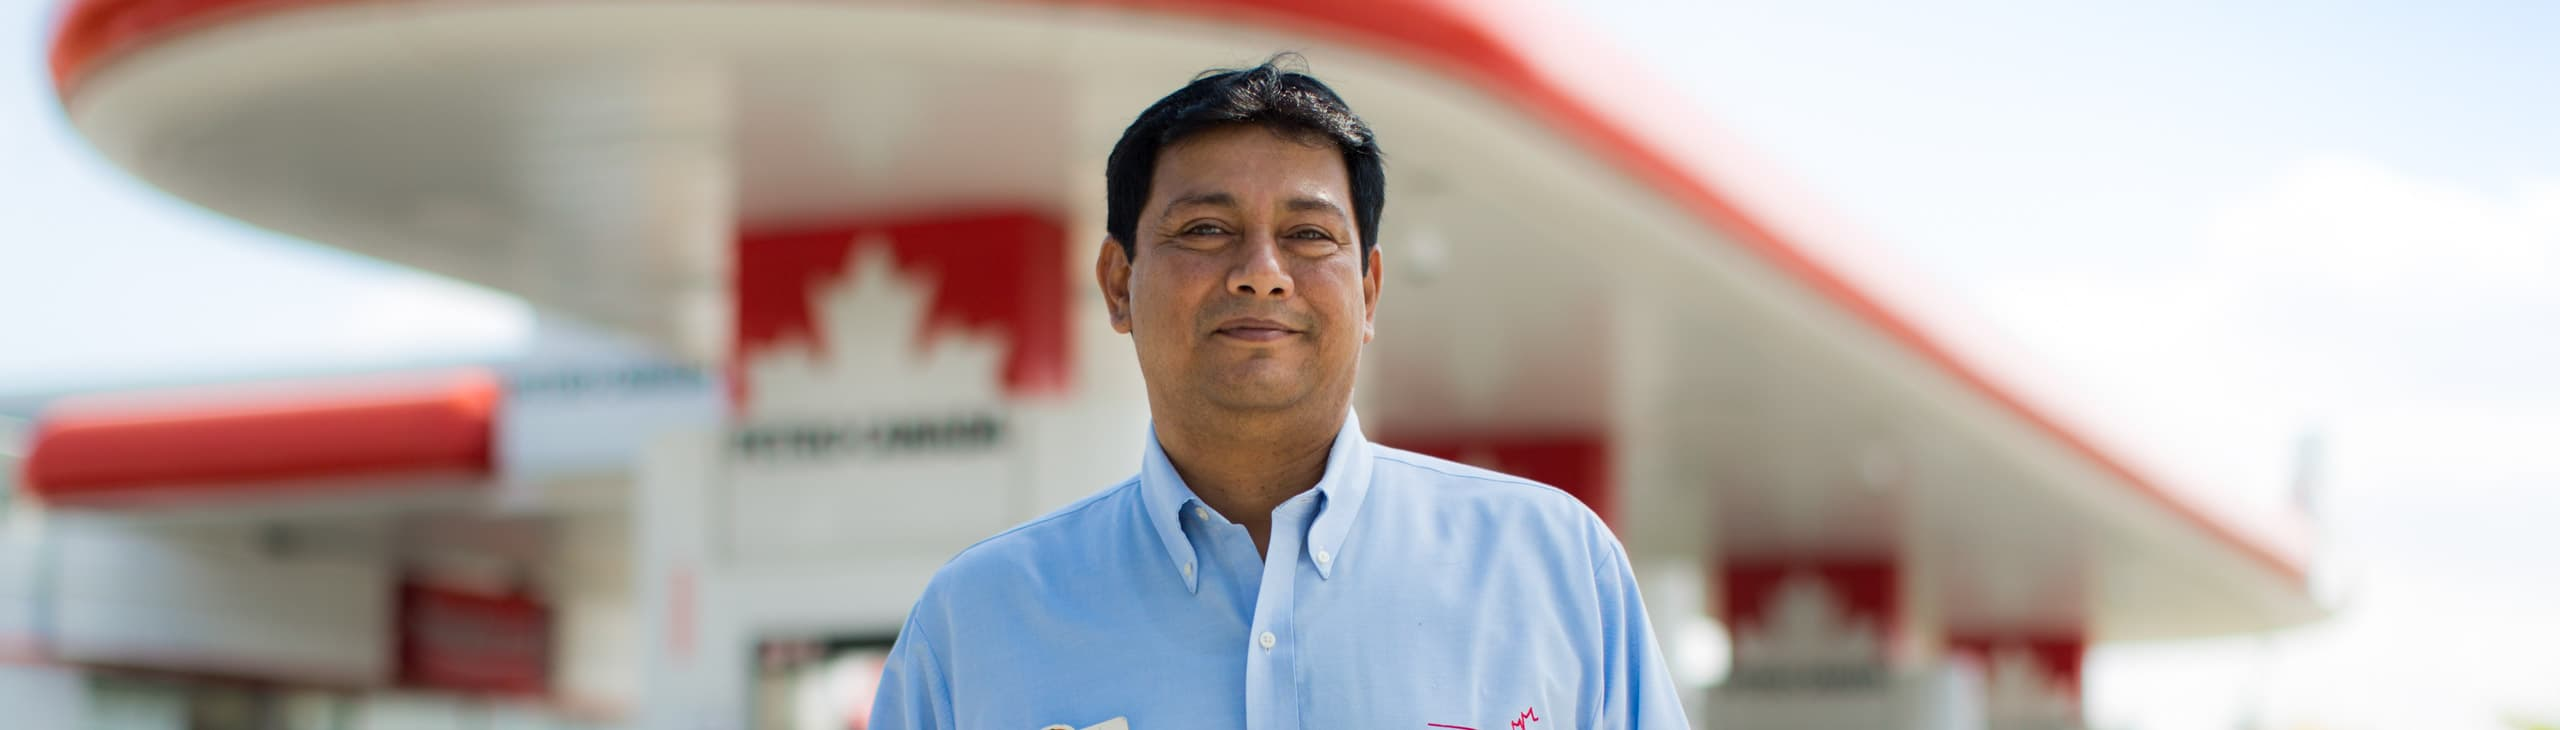 A Petro-Canada retail operator standing in front of his store.